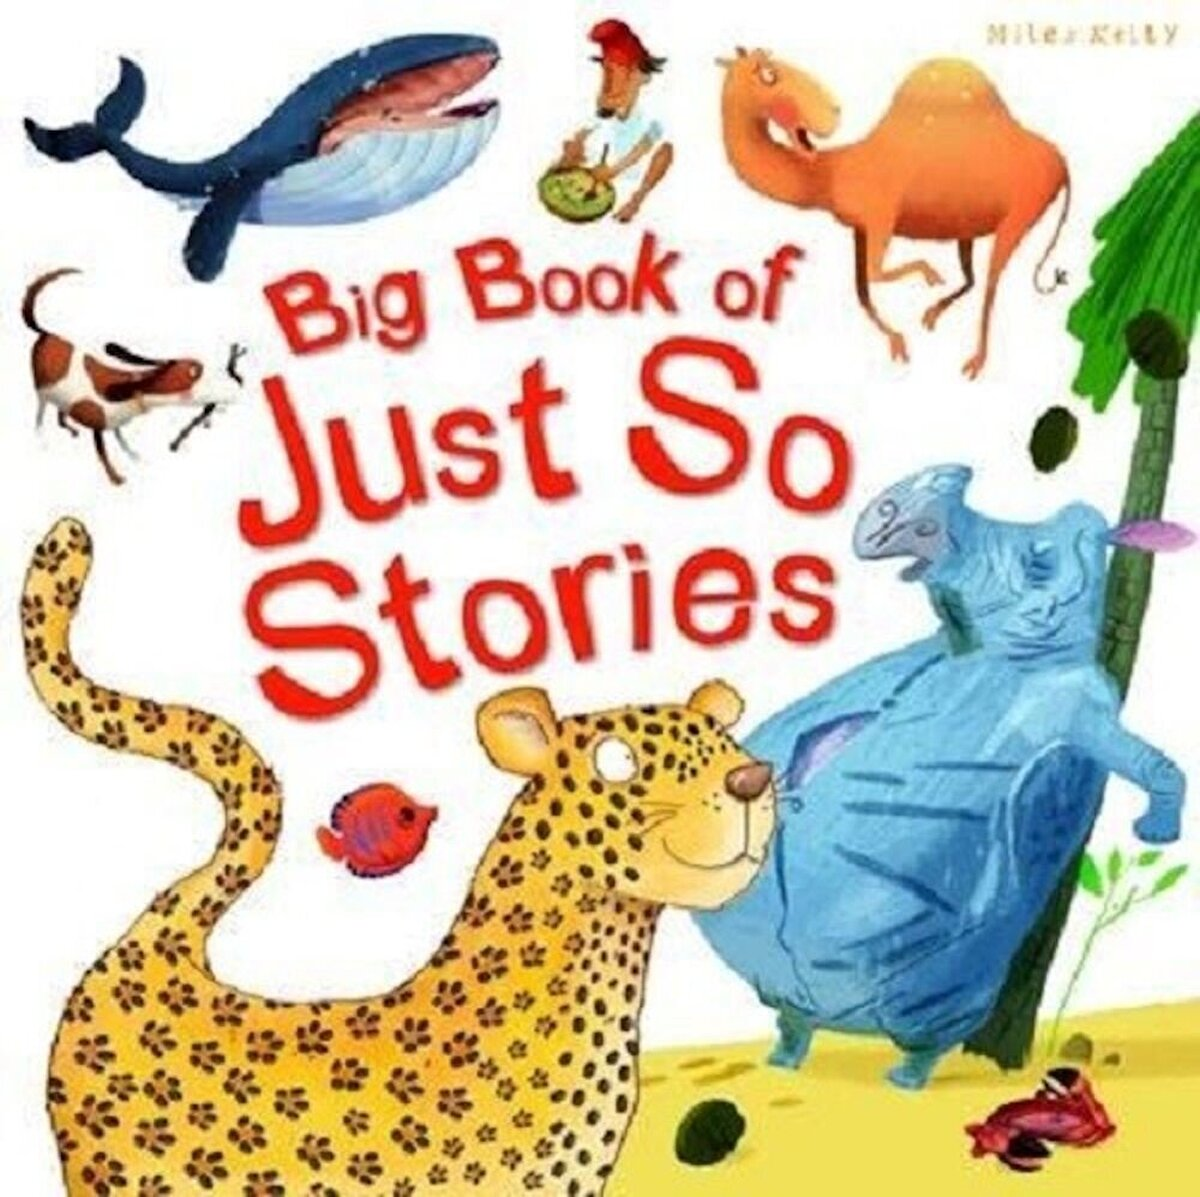 Big Book of Just So Stories (Big Book of Series)